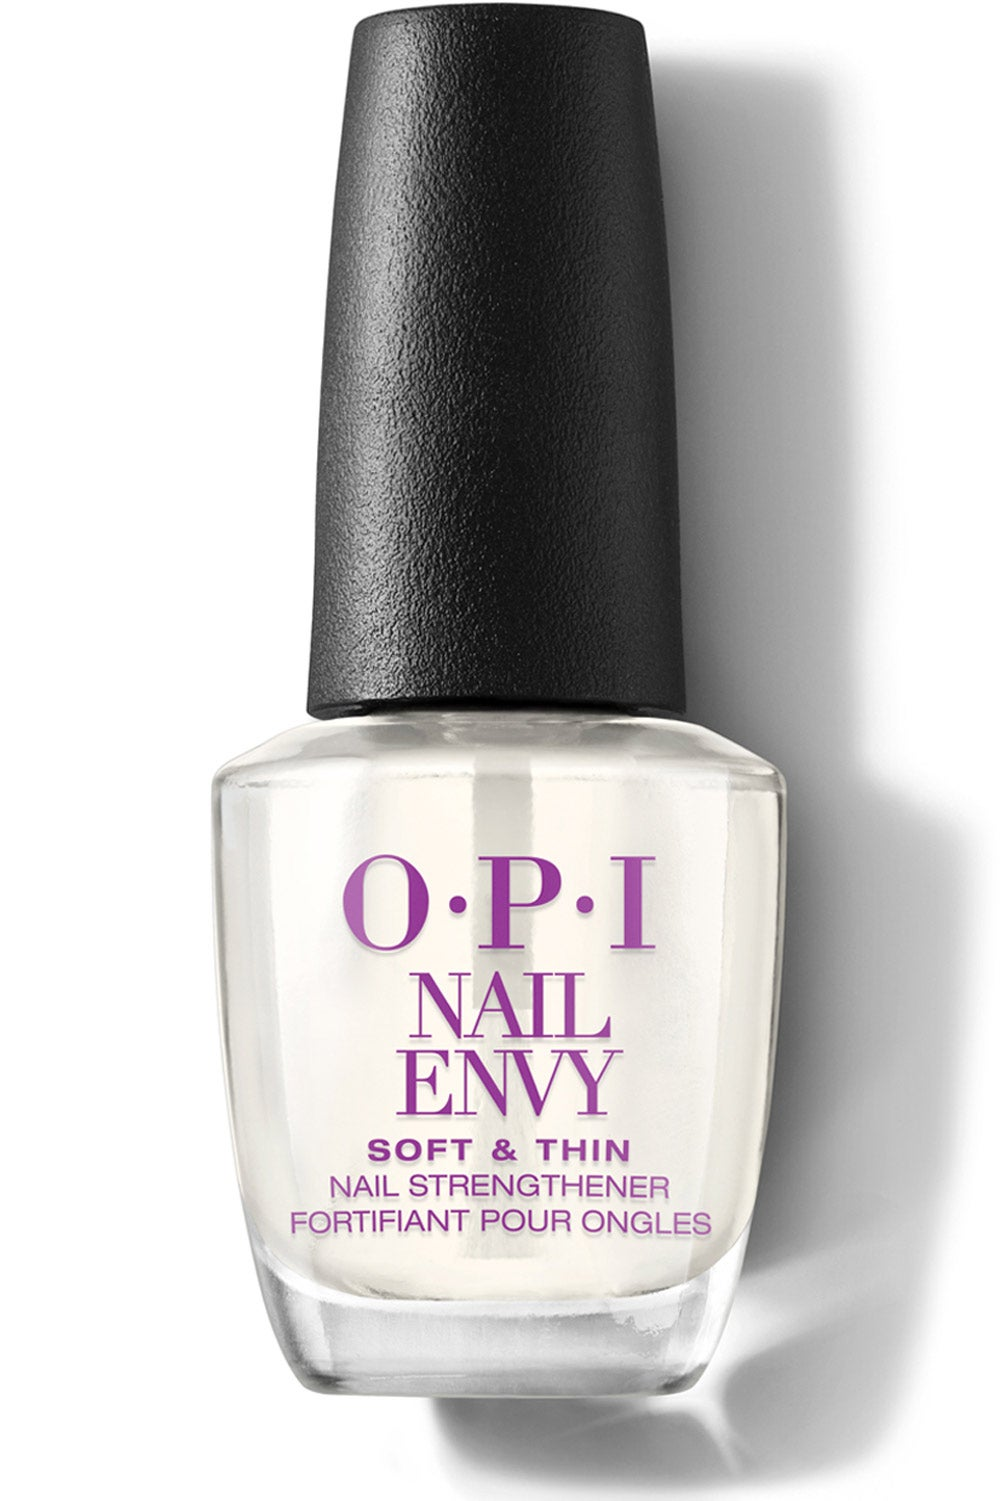 OPI Nail Envy Soft and Thin Nail Treatment for Cancer Patients